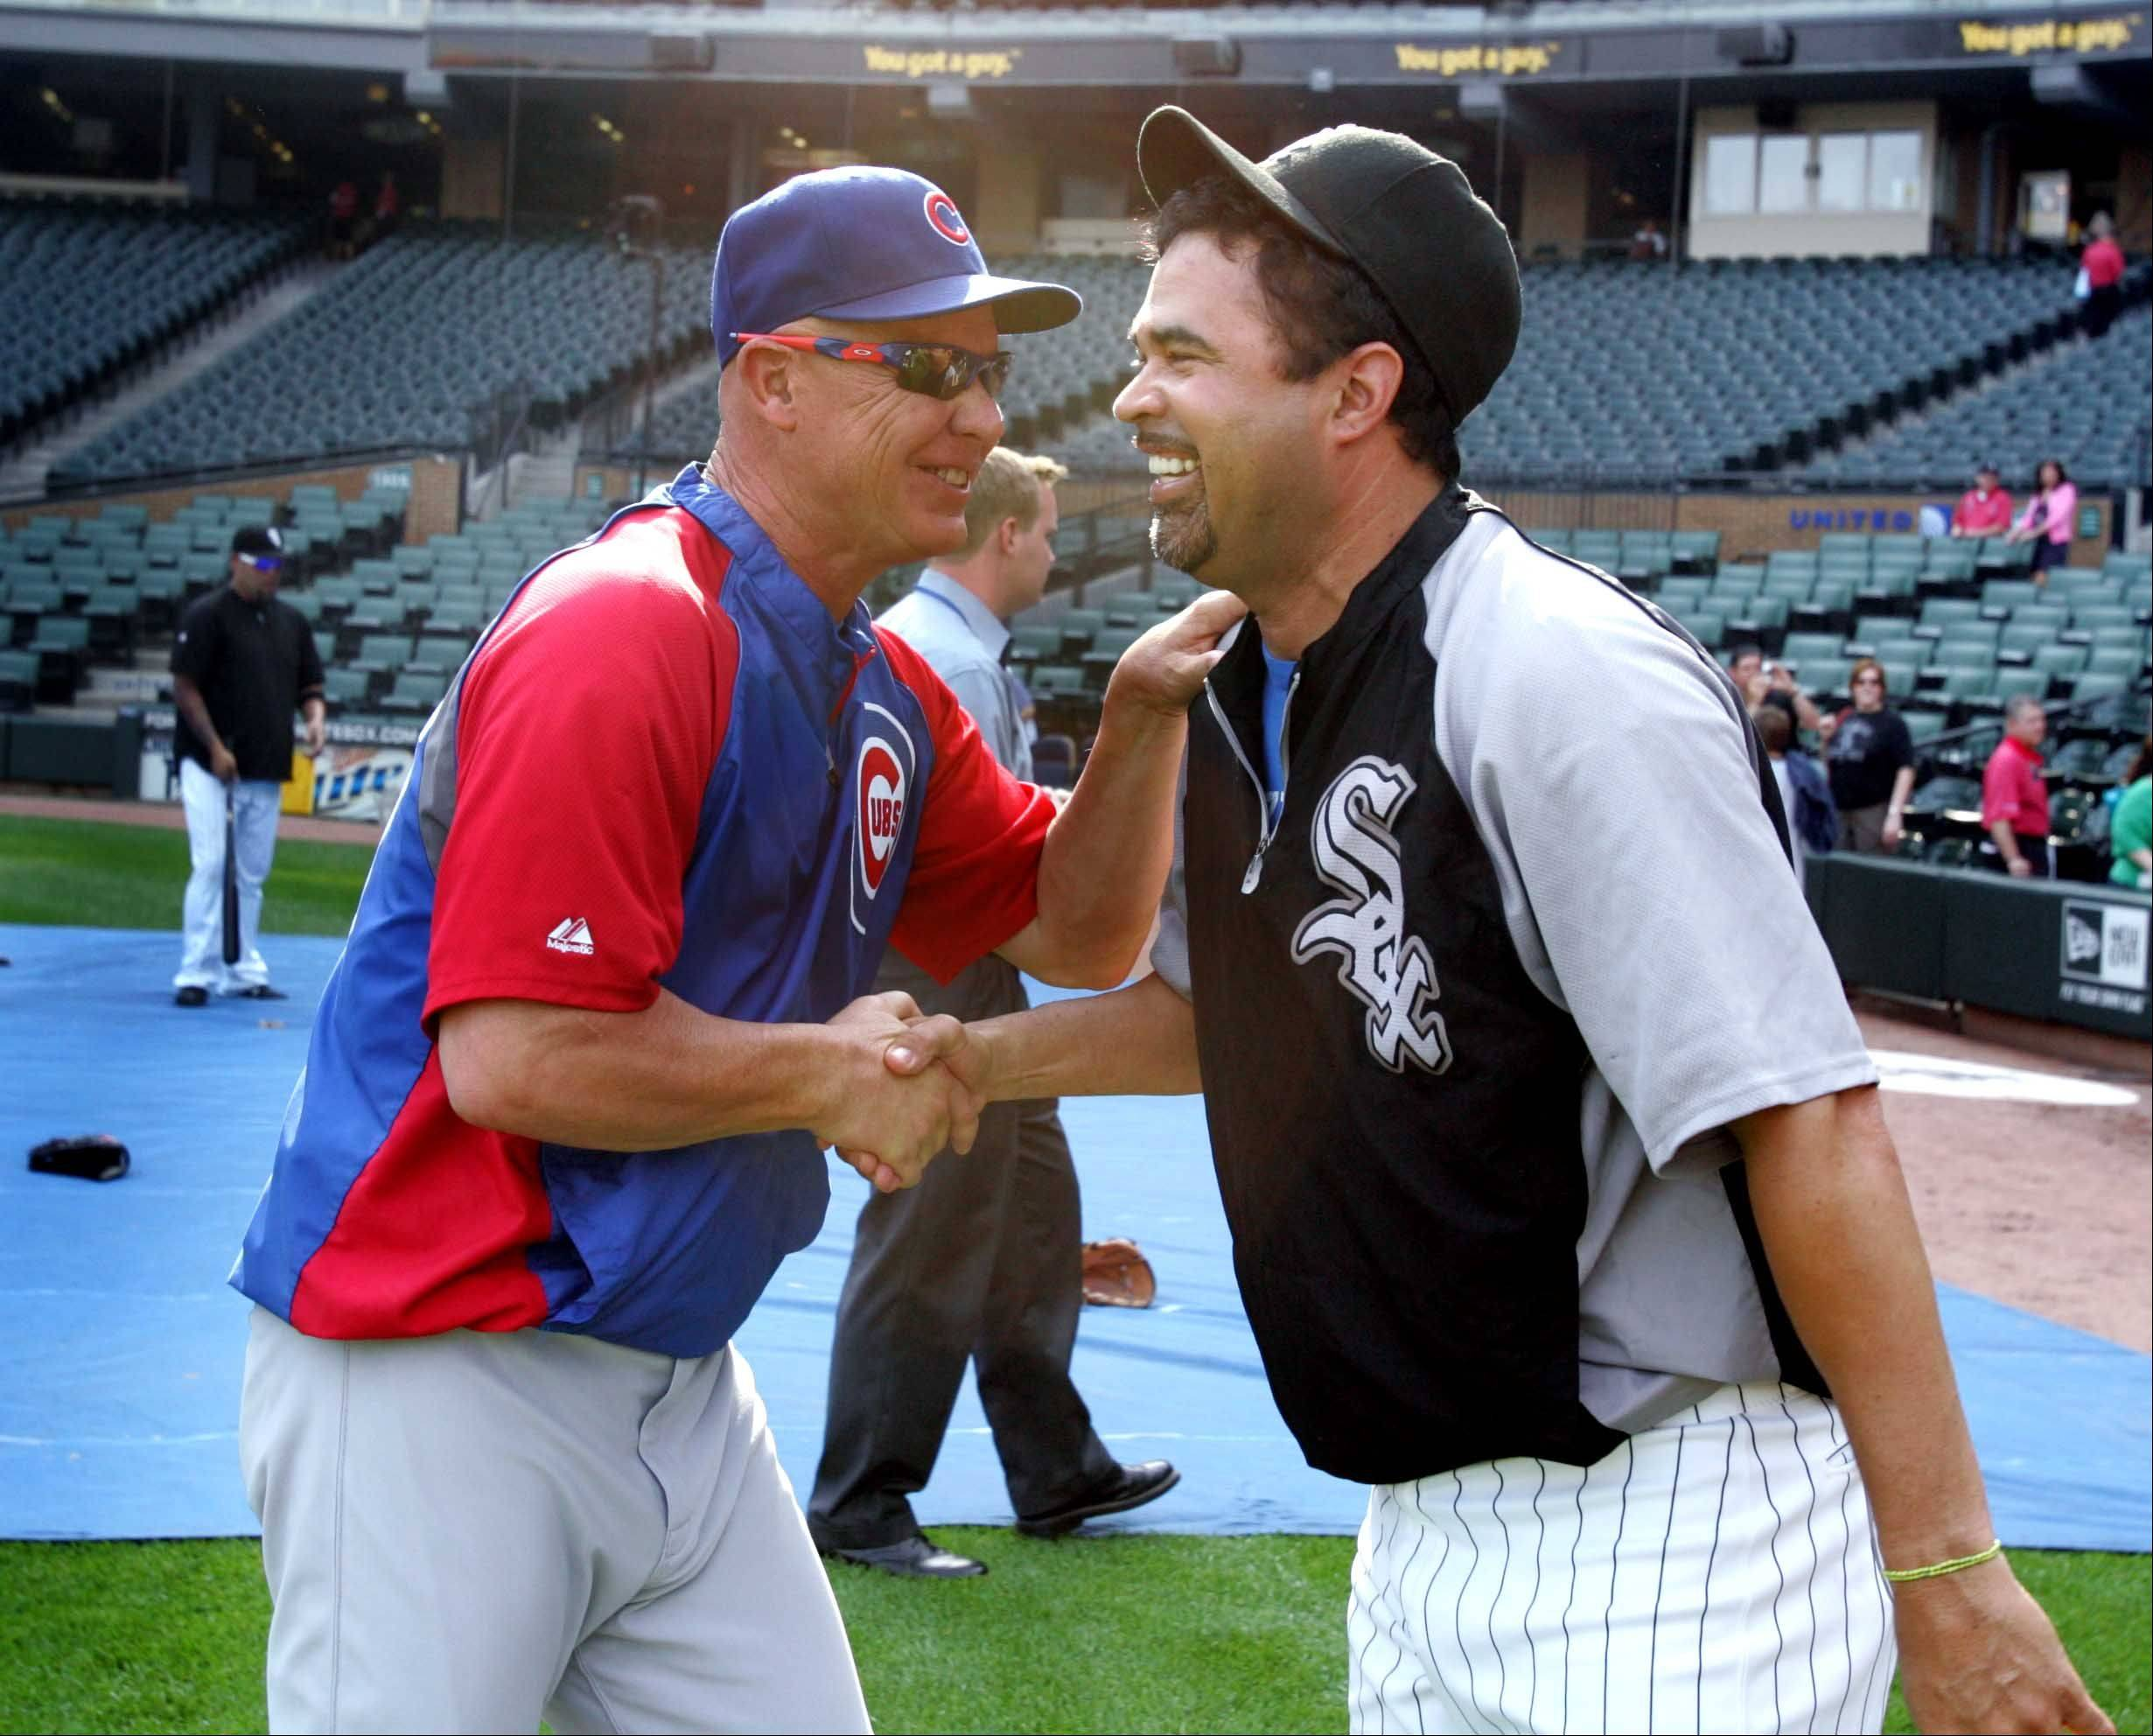 Cubs manager Mike Quade, left, White Sox manager Ozzie Guillen before Monday's crosstown game at U.S. Cellular Field.